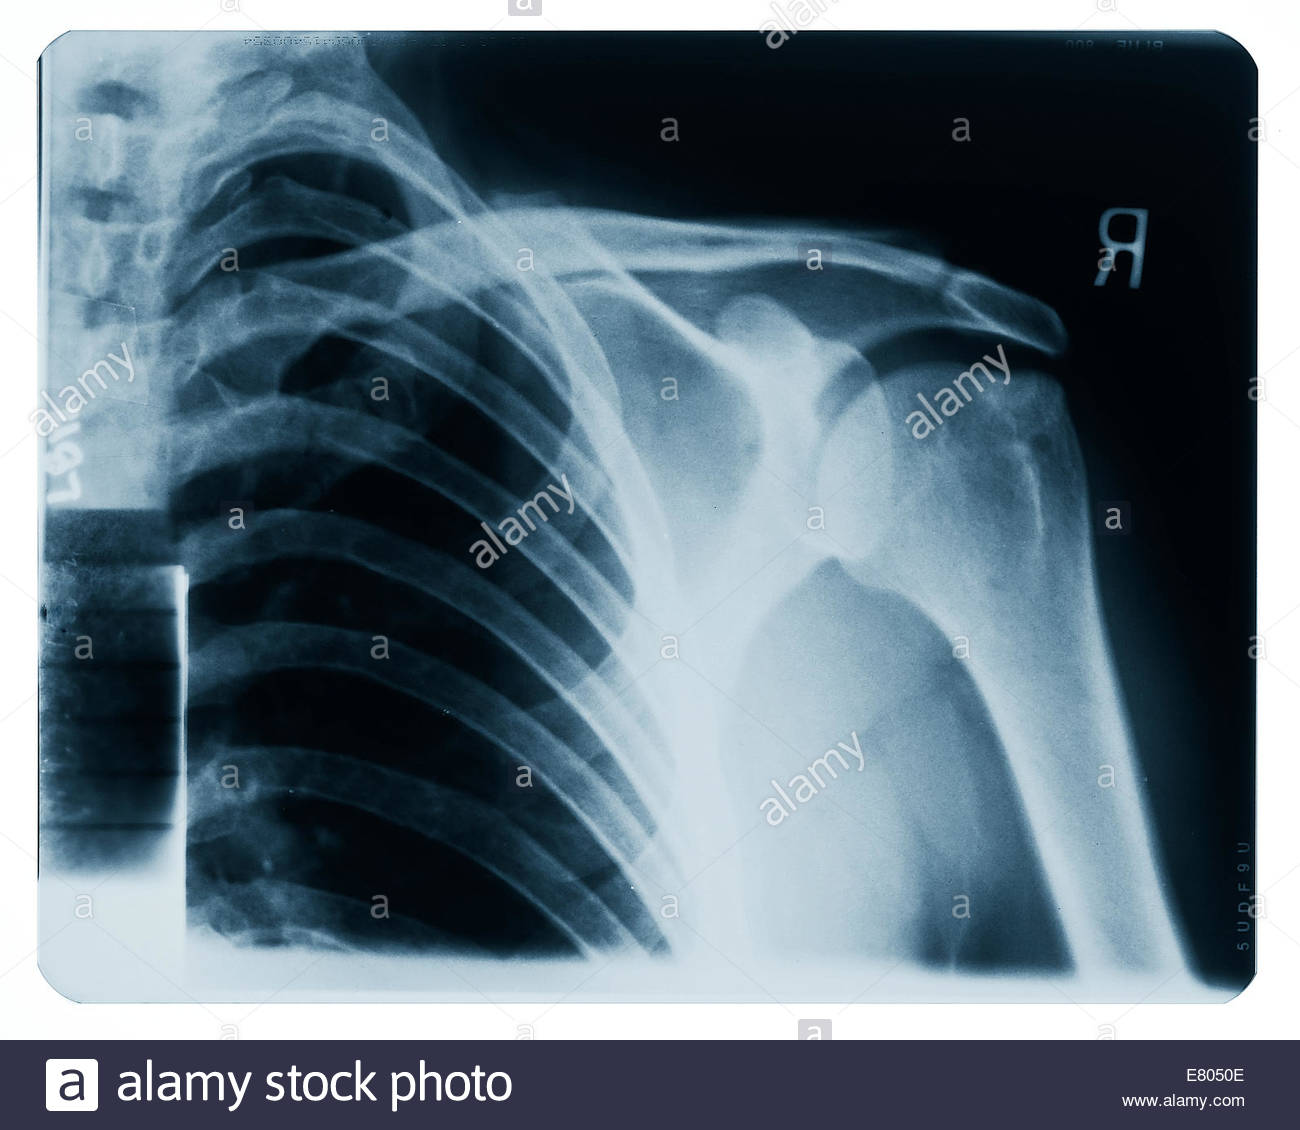 X-ray images of chest, shoulder, arm & body parts. Check my portfolio (Bocah Images) for more. - Stock Image